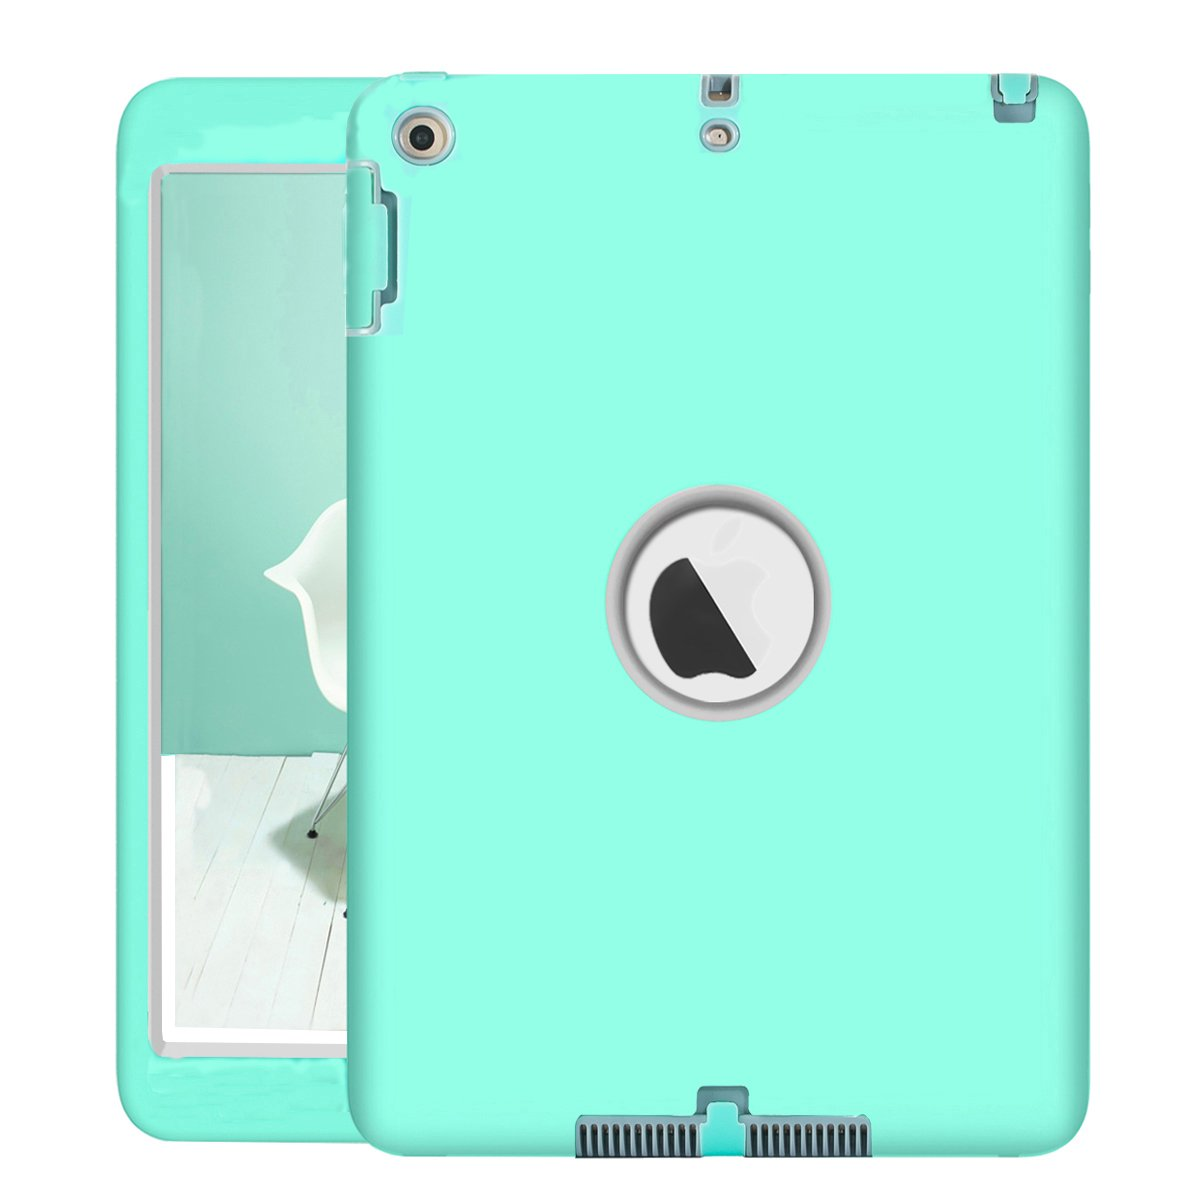 New iPad 9.7 Inch 2018/2017 Case, UZER Heavy Duty Shockproof Anti-slip Silicone High Impact Resistant Hybrid Three Layer hard PC+Silicone Armor Protective Case Cover for New iPad 9.7 inch 2017/2018